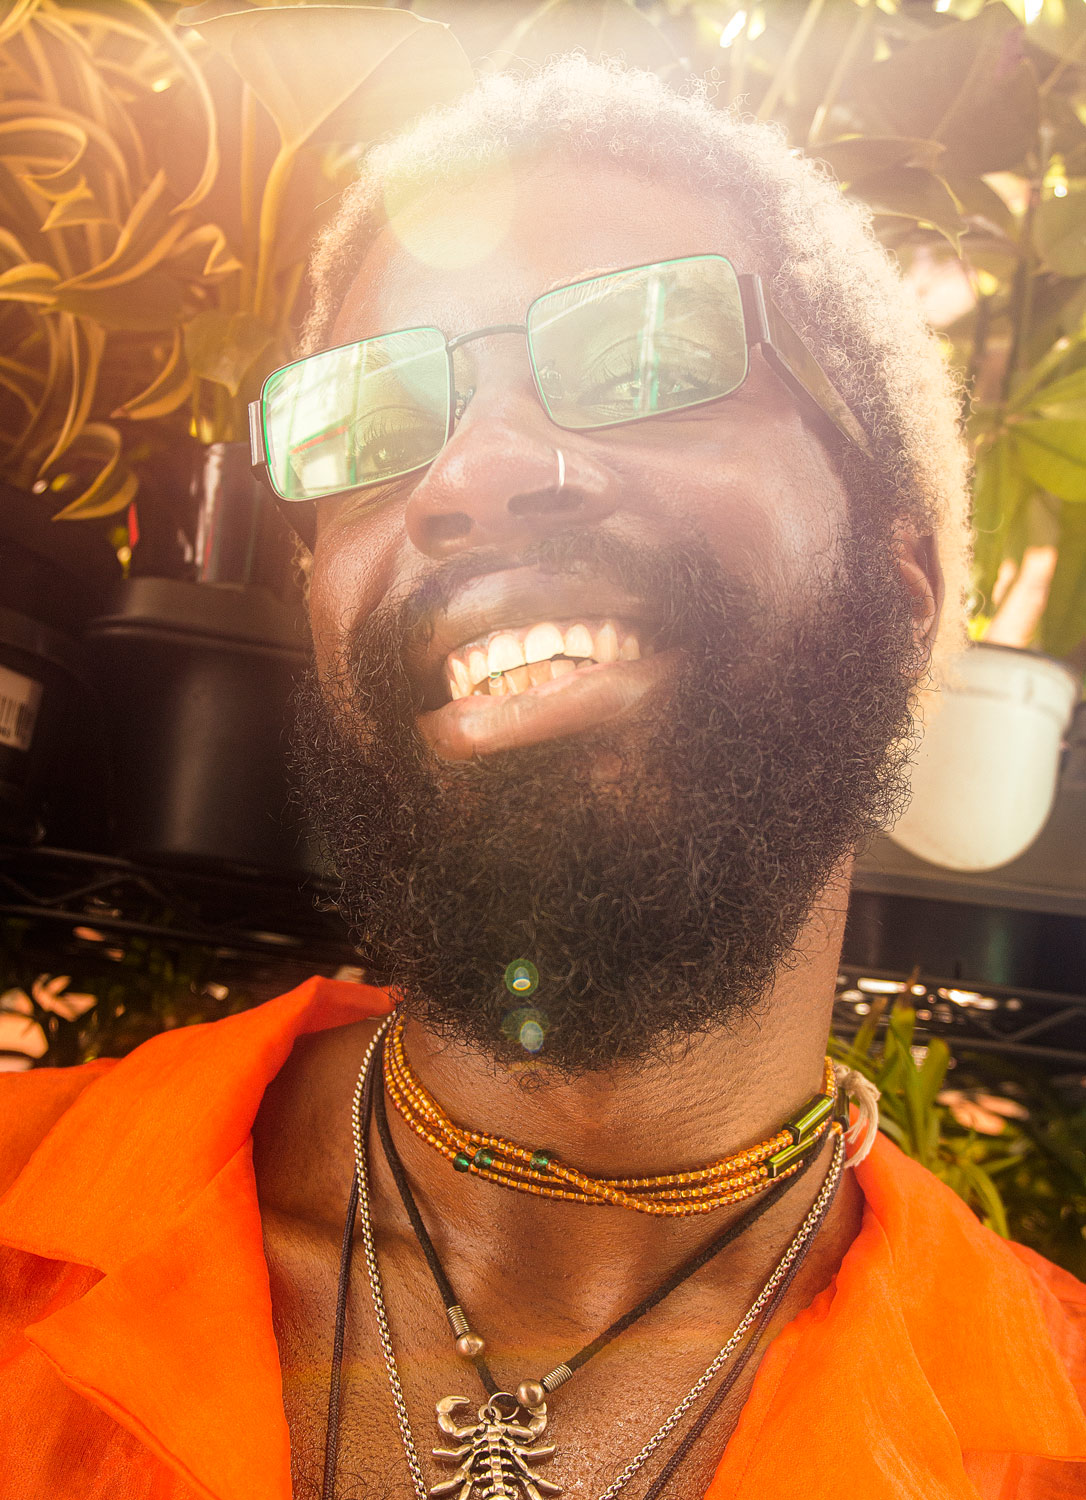 DJ Freedem, the 'trap gardener' advocating for reparations through houseplants